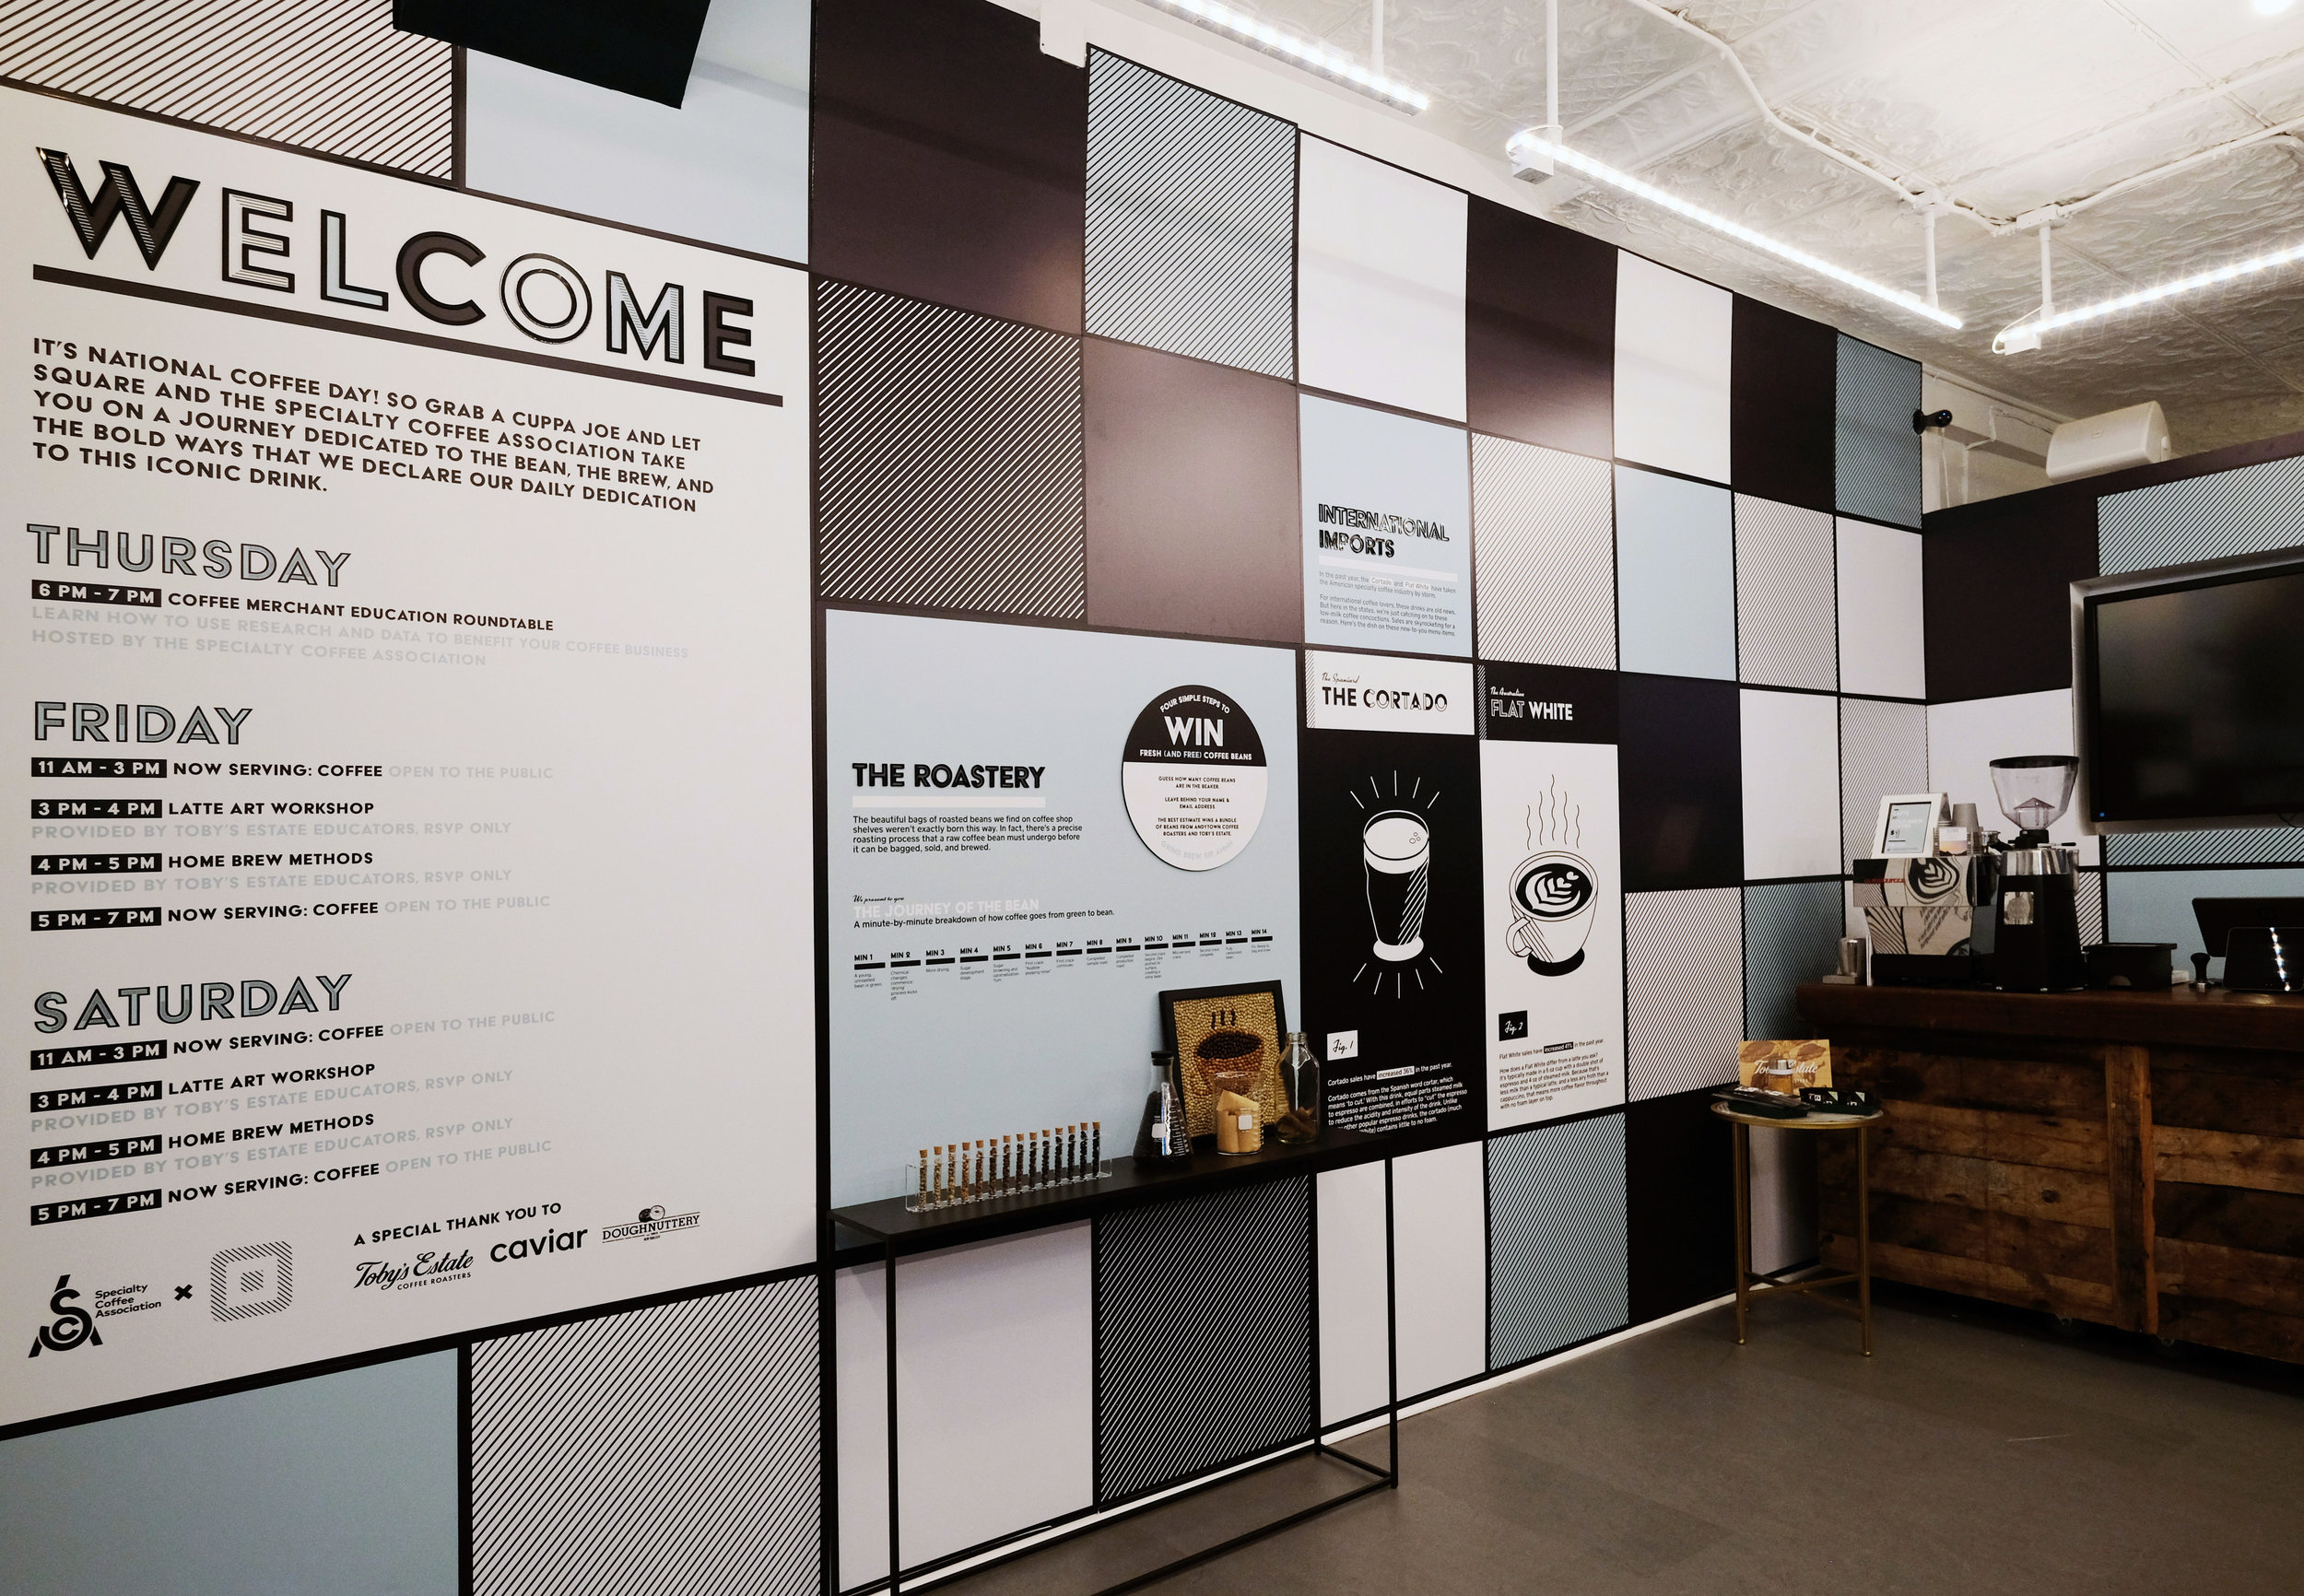 Square - Now Serving Coffee - interior 1.JPG